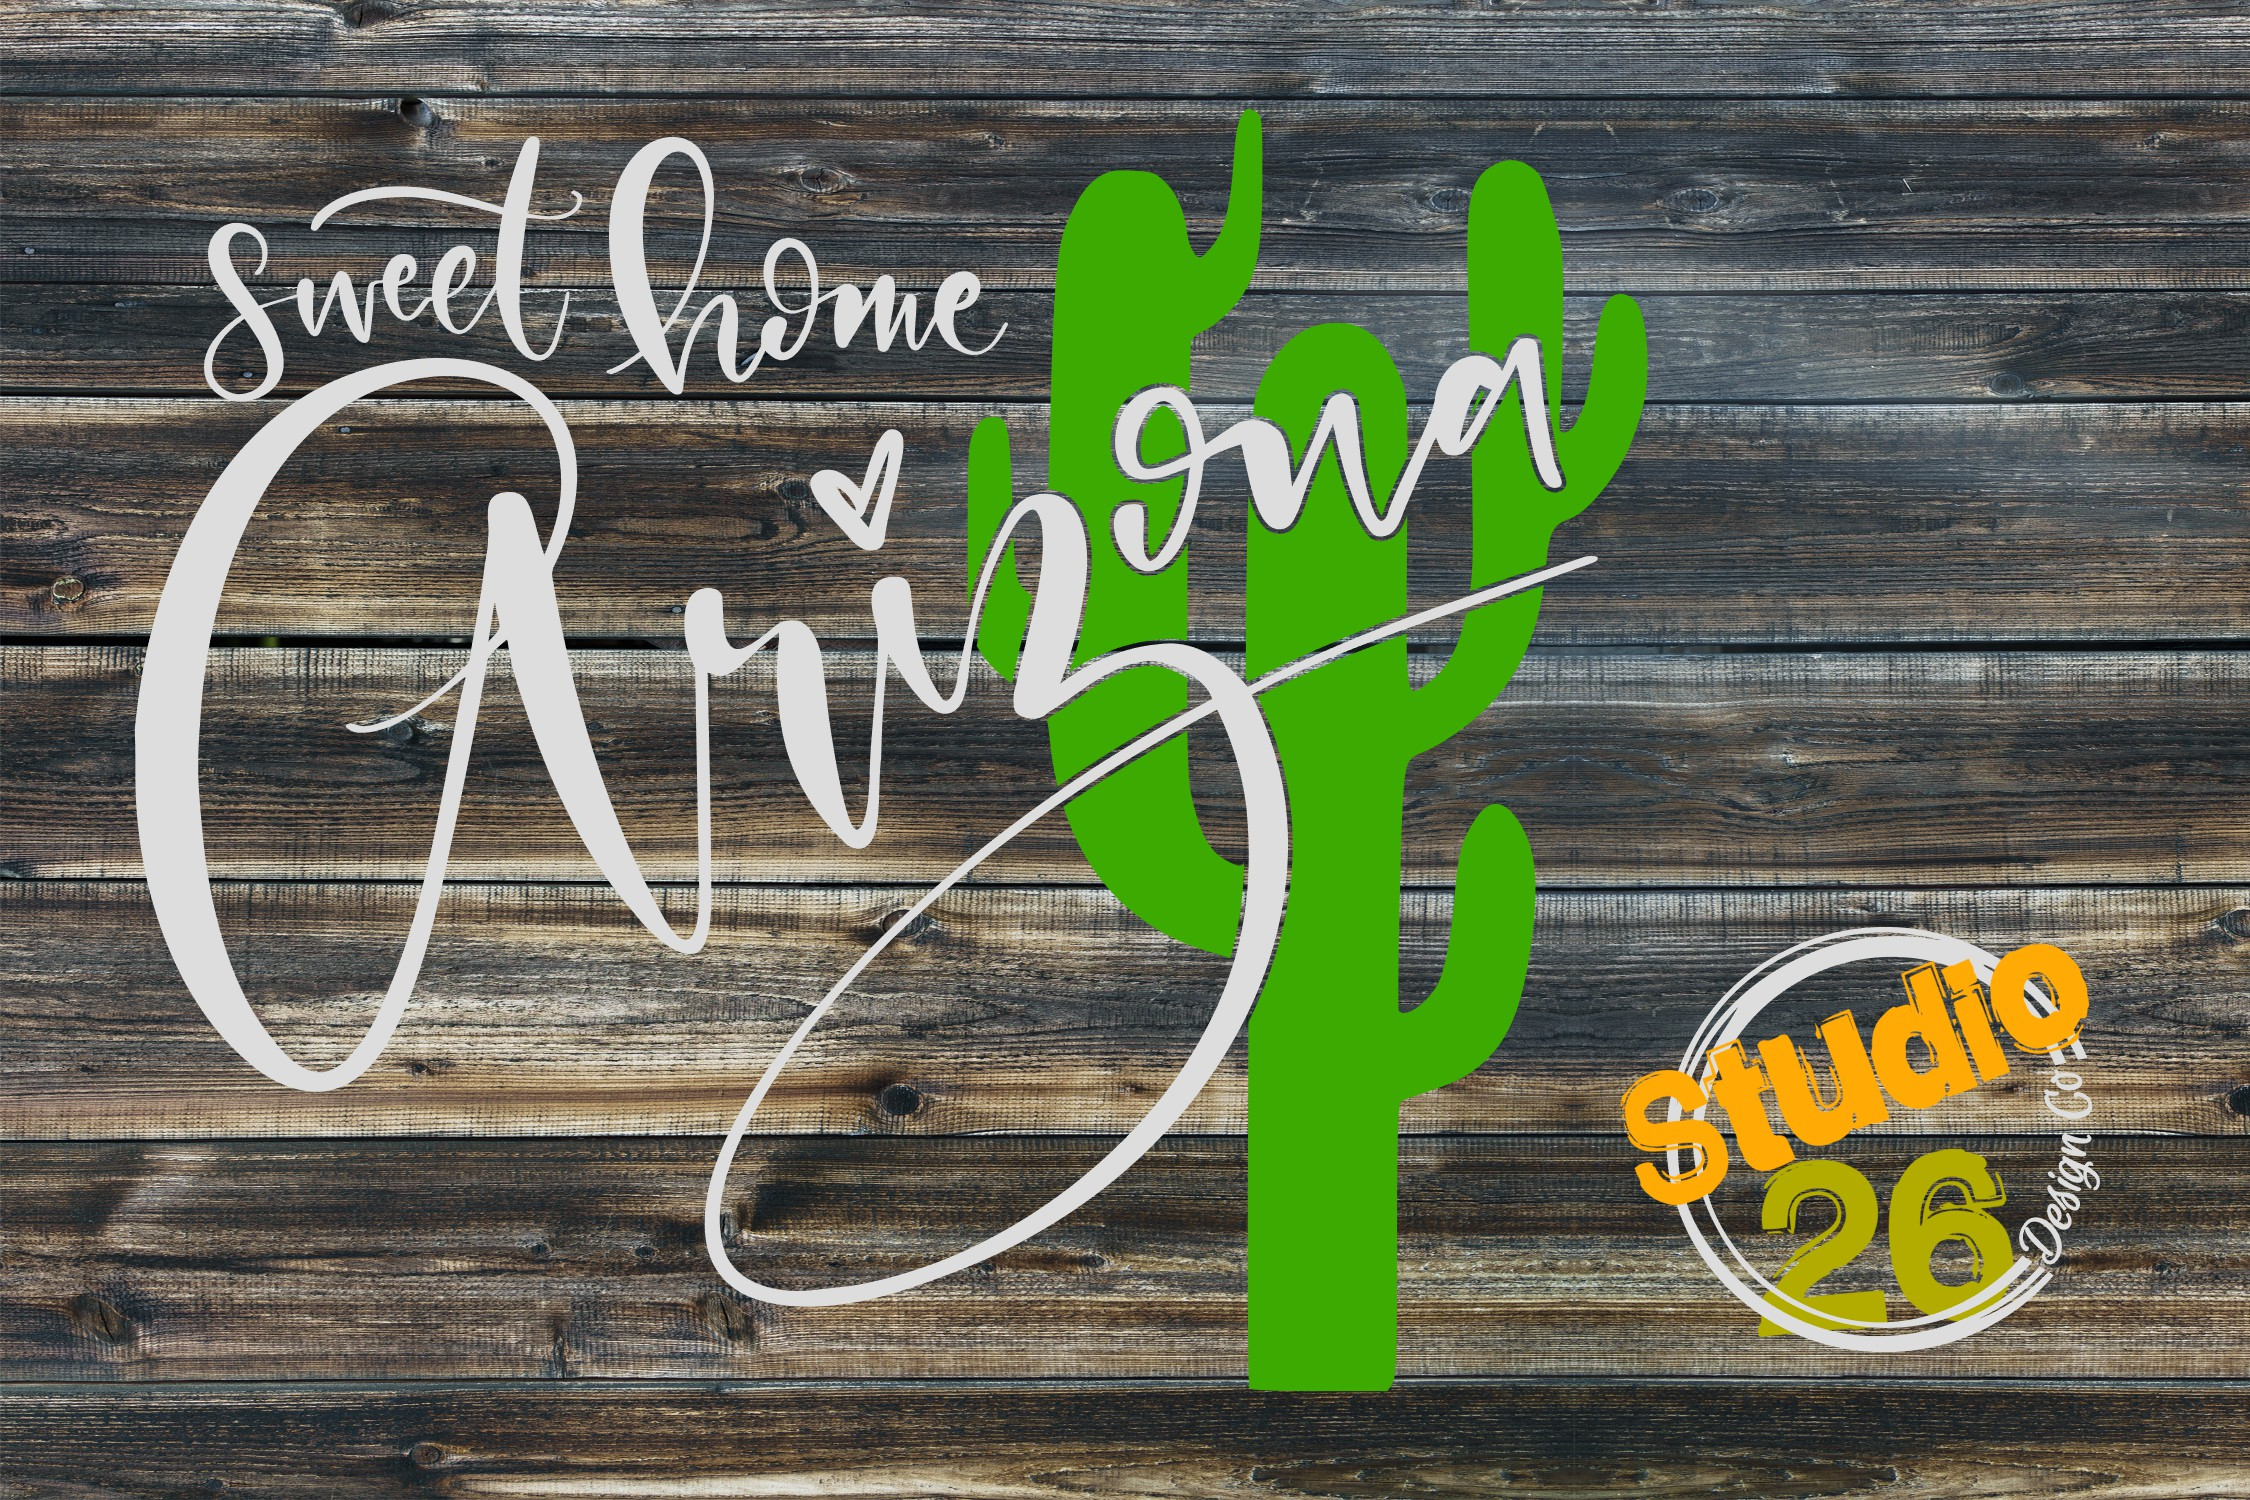 Download Free Sweet Home Arizona Graphic By Studio 26 Design Co Creative Fabrica for Cricut Explore, Silhouette and other cutting machines.